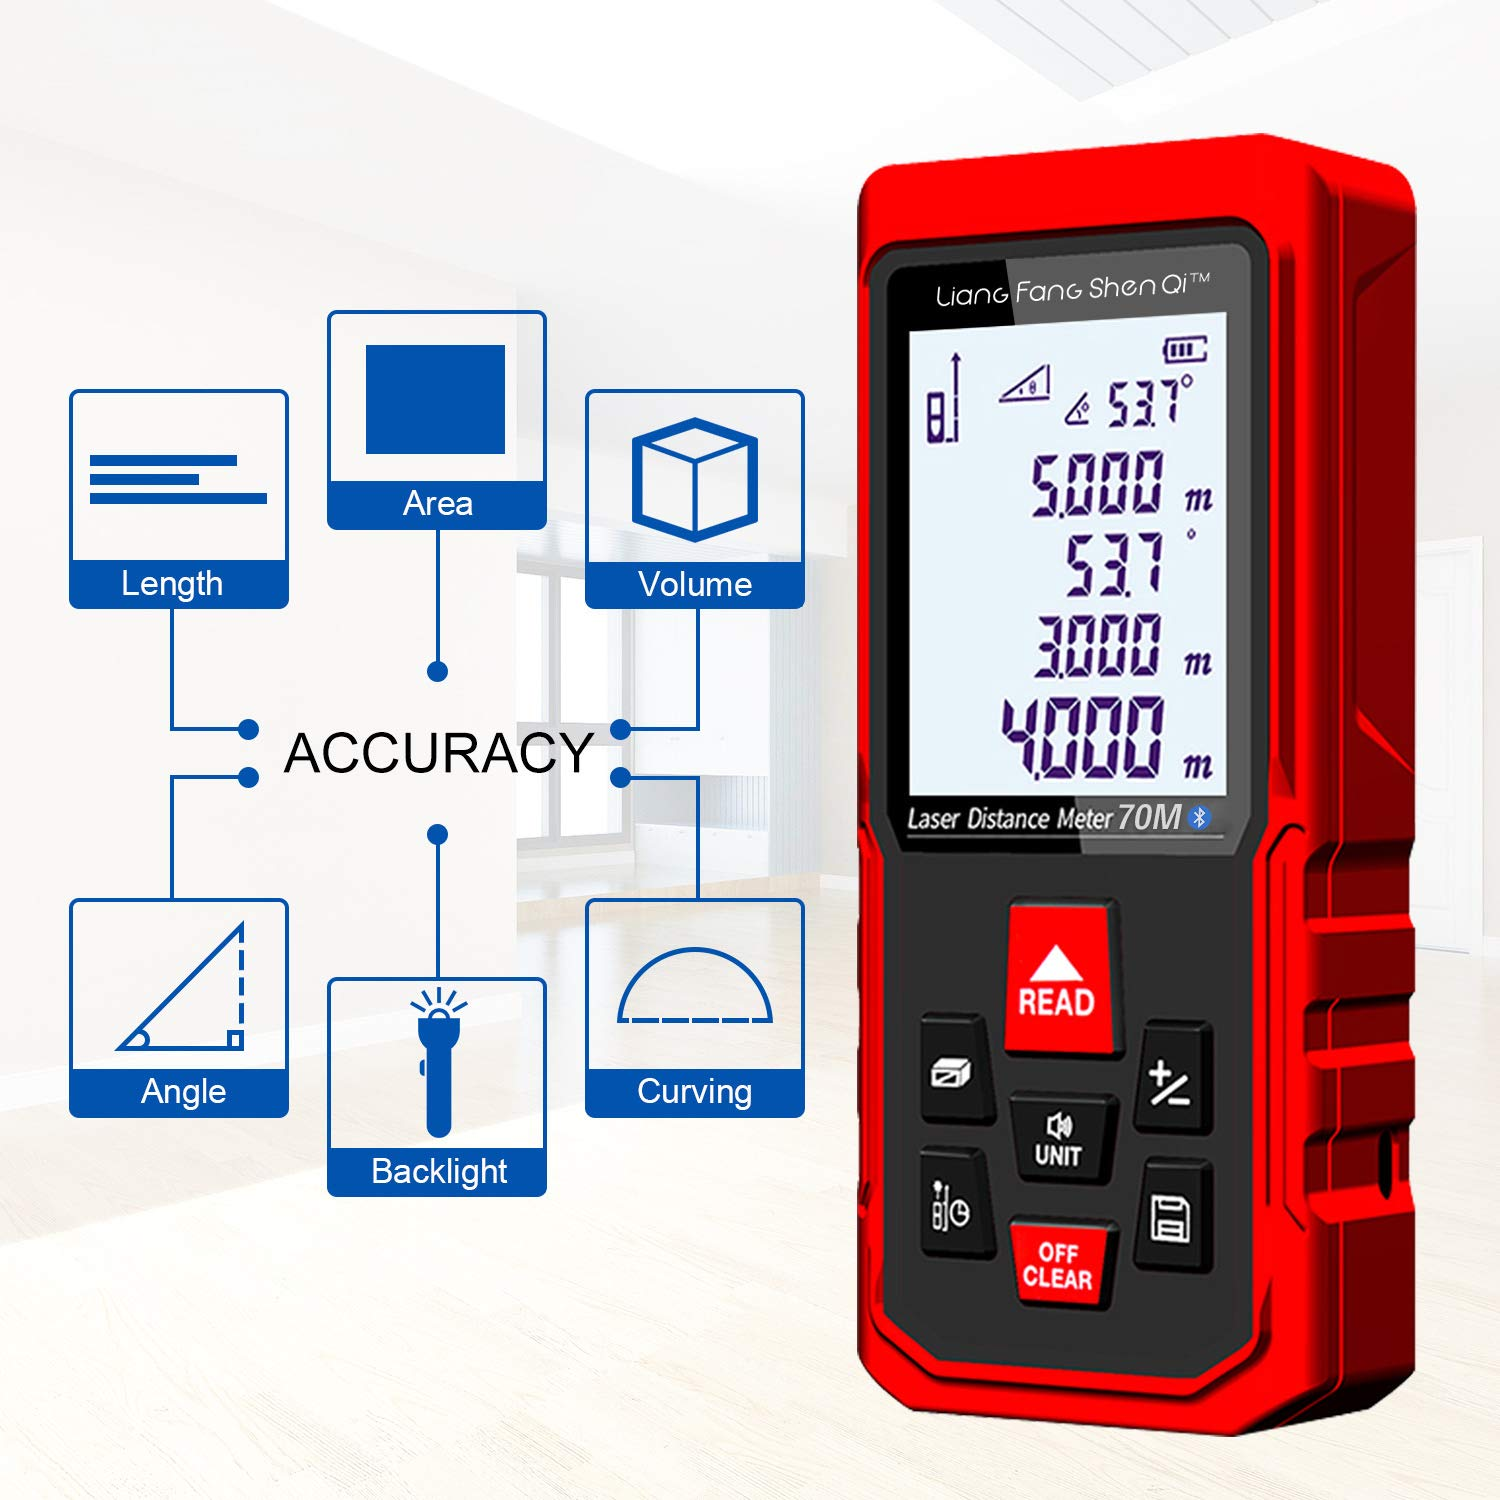 Backlit Display Ultimate Liangfangshenqi Laser Measure Bluetooth Laser Distance Meter Kc B70 Laser Measuring Device With Floor Plan App For Android Ios Red 230ft 70m Measuring Layout Tools Linear Measurement Digimax Dental